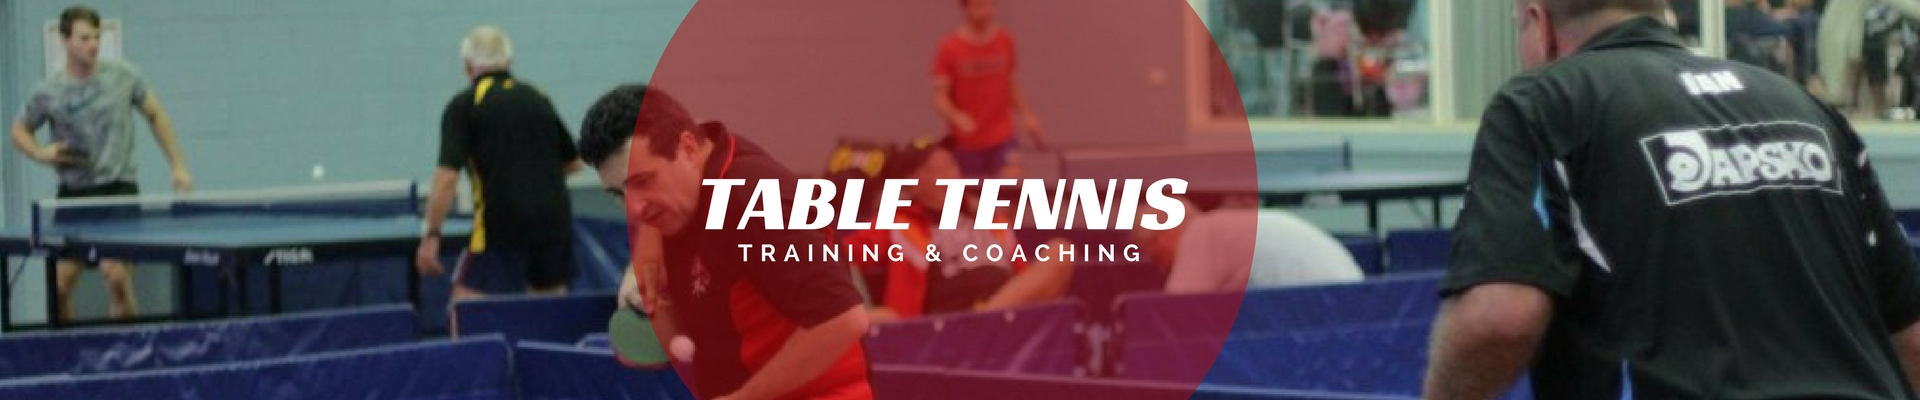 table tennis training and coaching